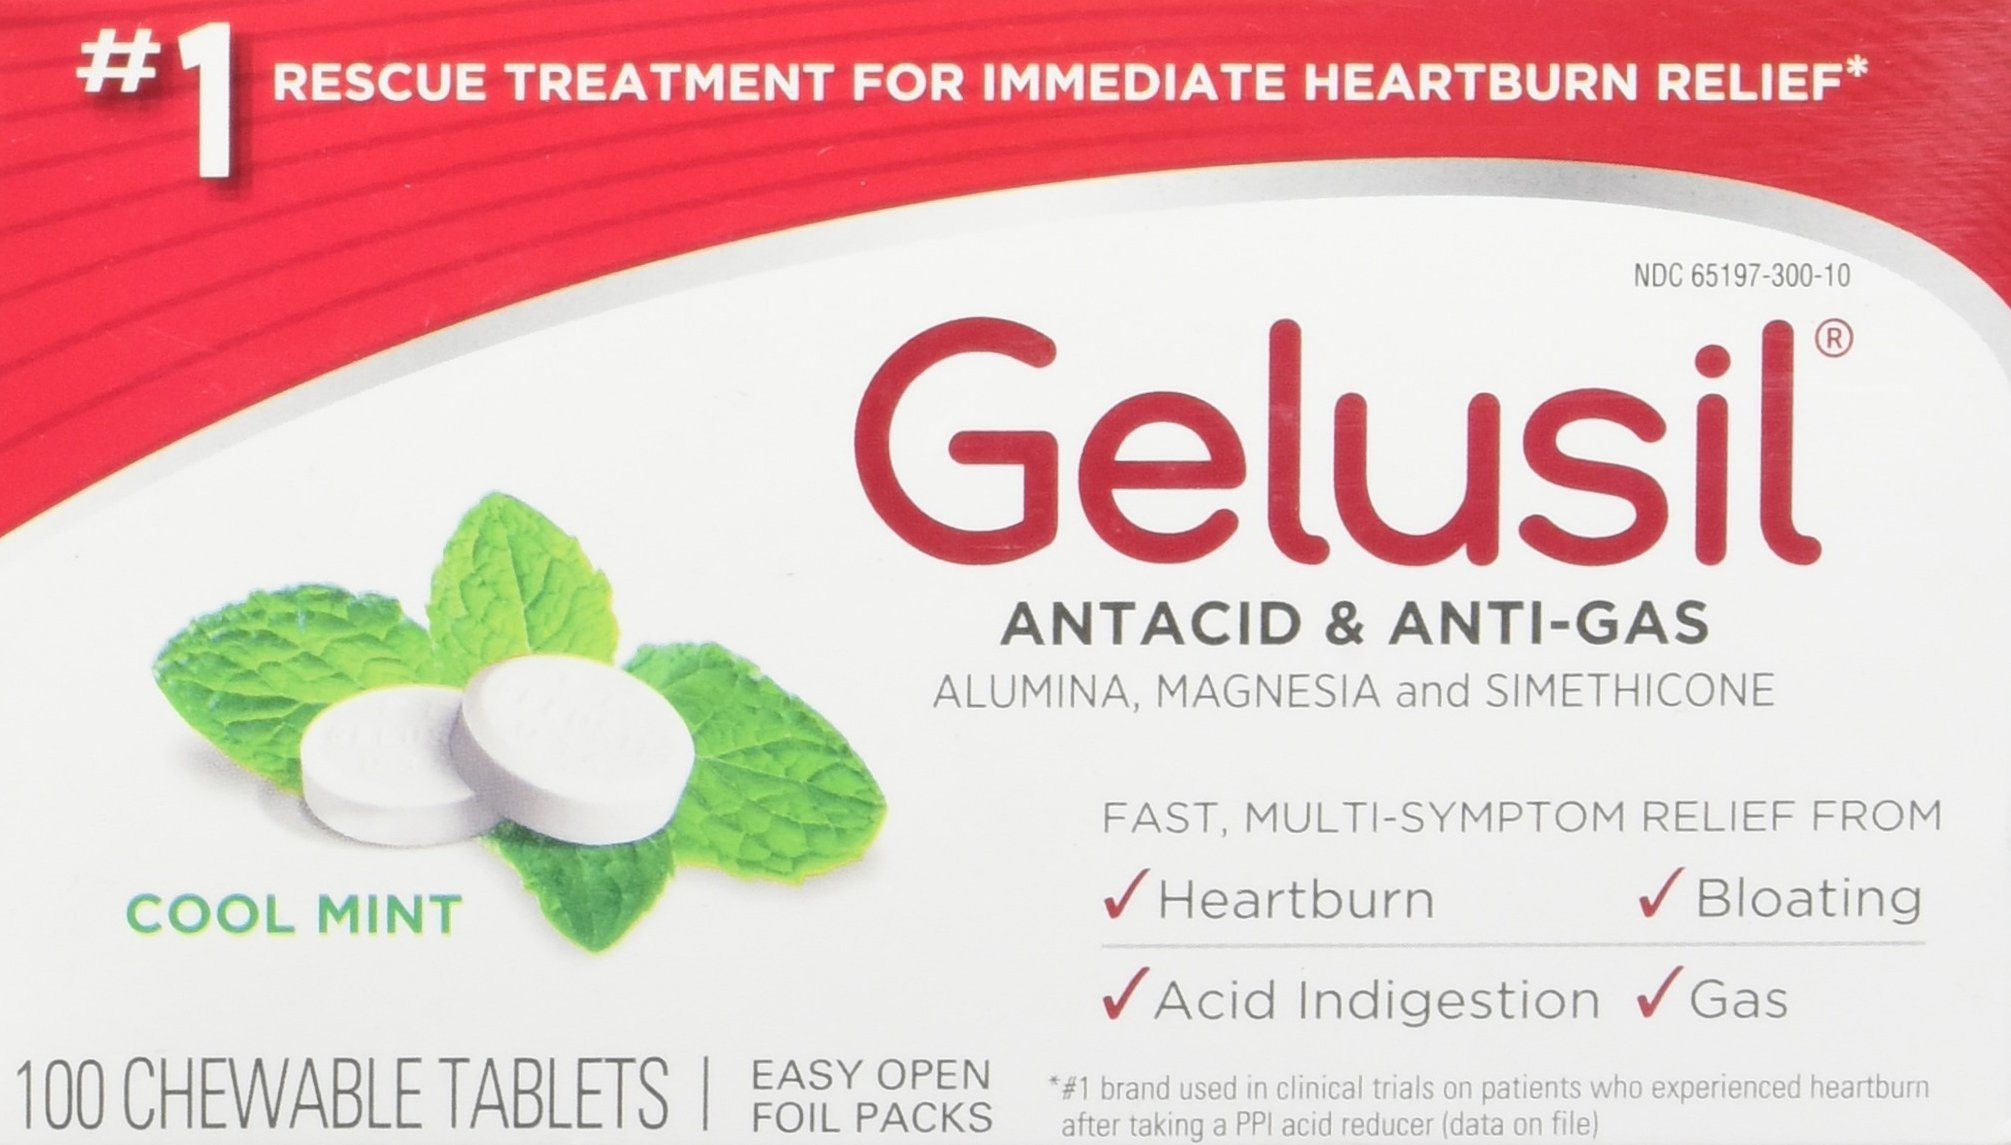 Gelusil Antacid & Anti Gas Tablets for Heartburn Relief, Acid Reflux, Bloating and Gas, Cool Mint - 100ct Blister Pack